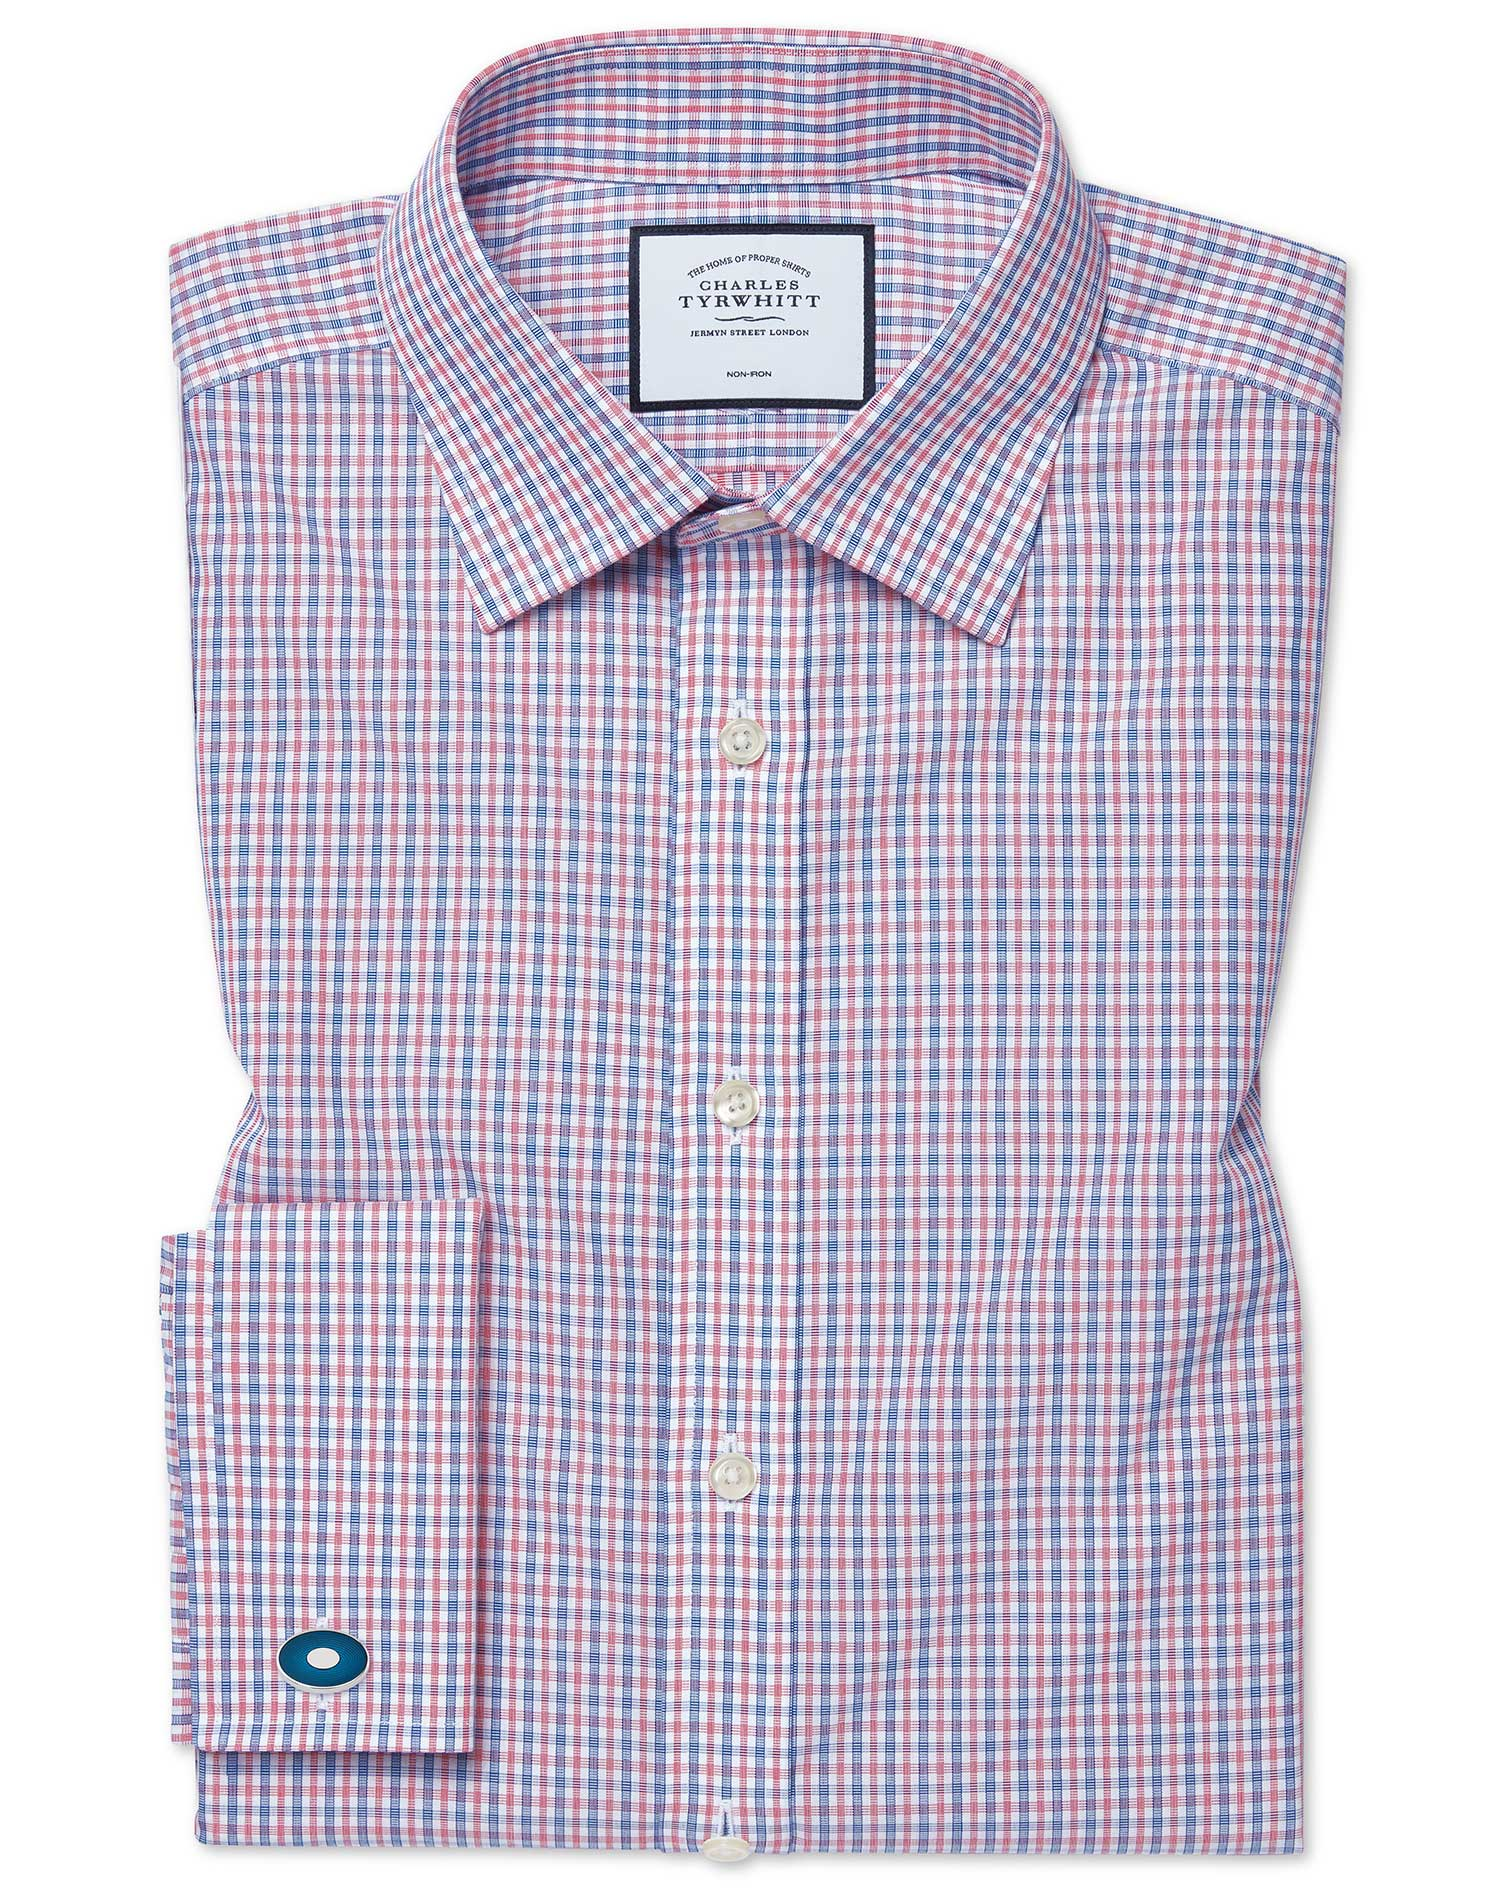 Classic Fit Non-Iron Poplin Blue and Red Cotton Formal Shirt Single Cuff Size 19/37 by Charles Tyrwhitt from Charles Tyrwhitt